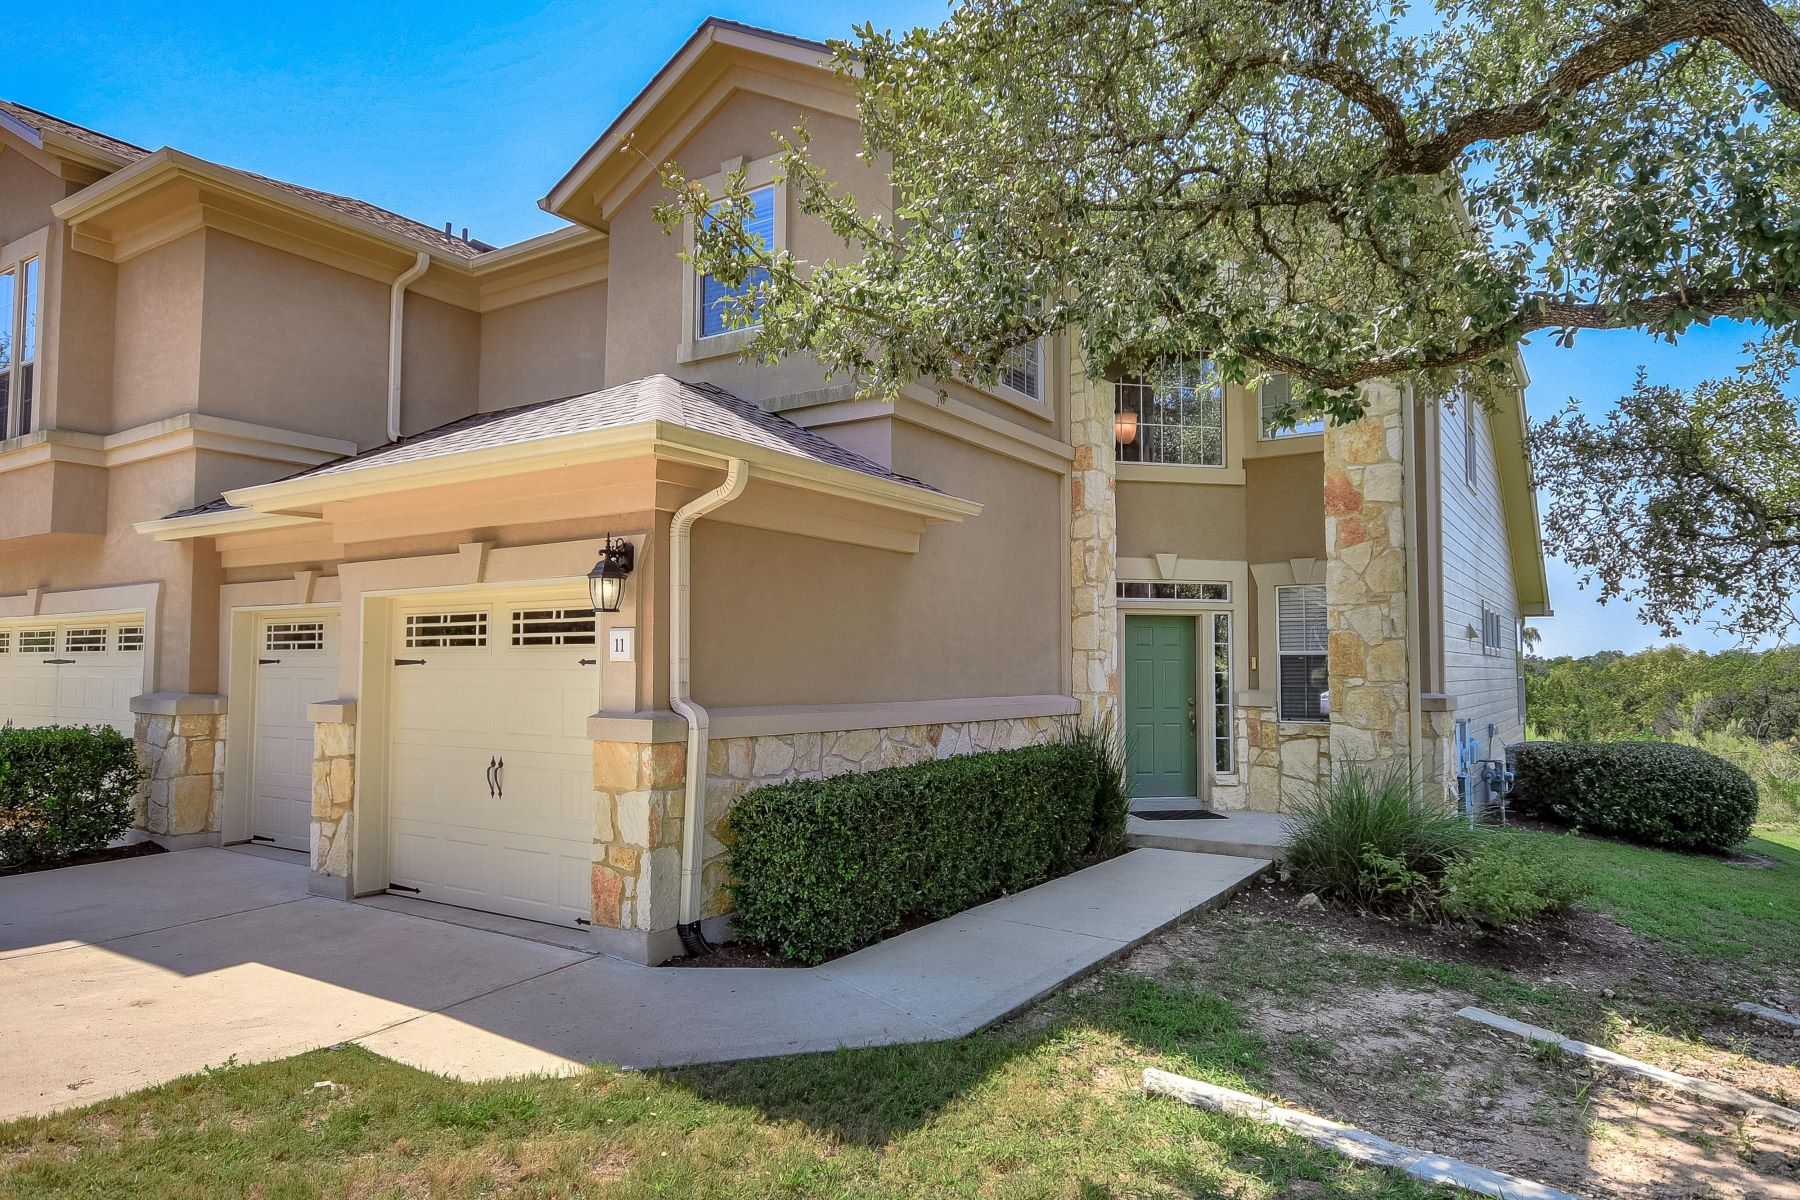 Condominium for Sale at Exceptional Condo in Gated Community 7901 Southwest Parkway Austin, Texas 78735 United States